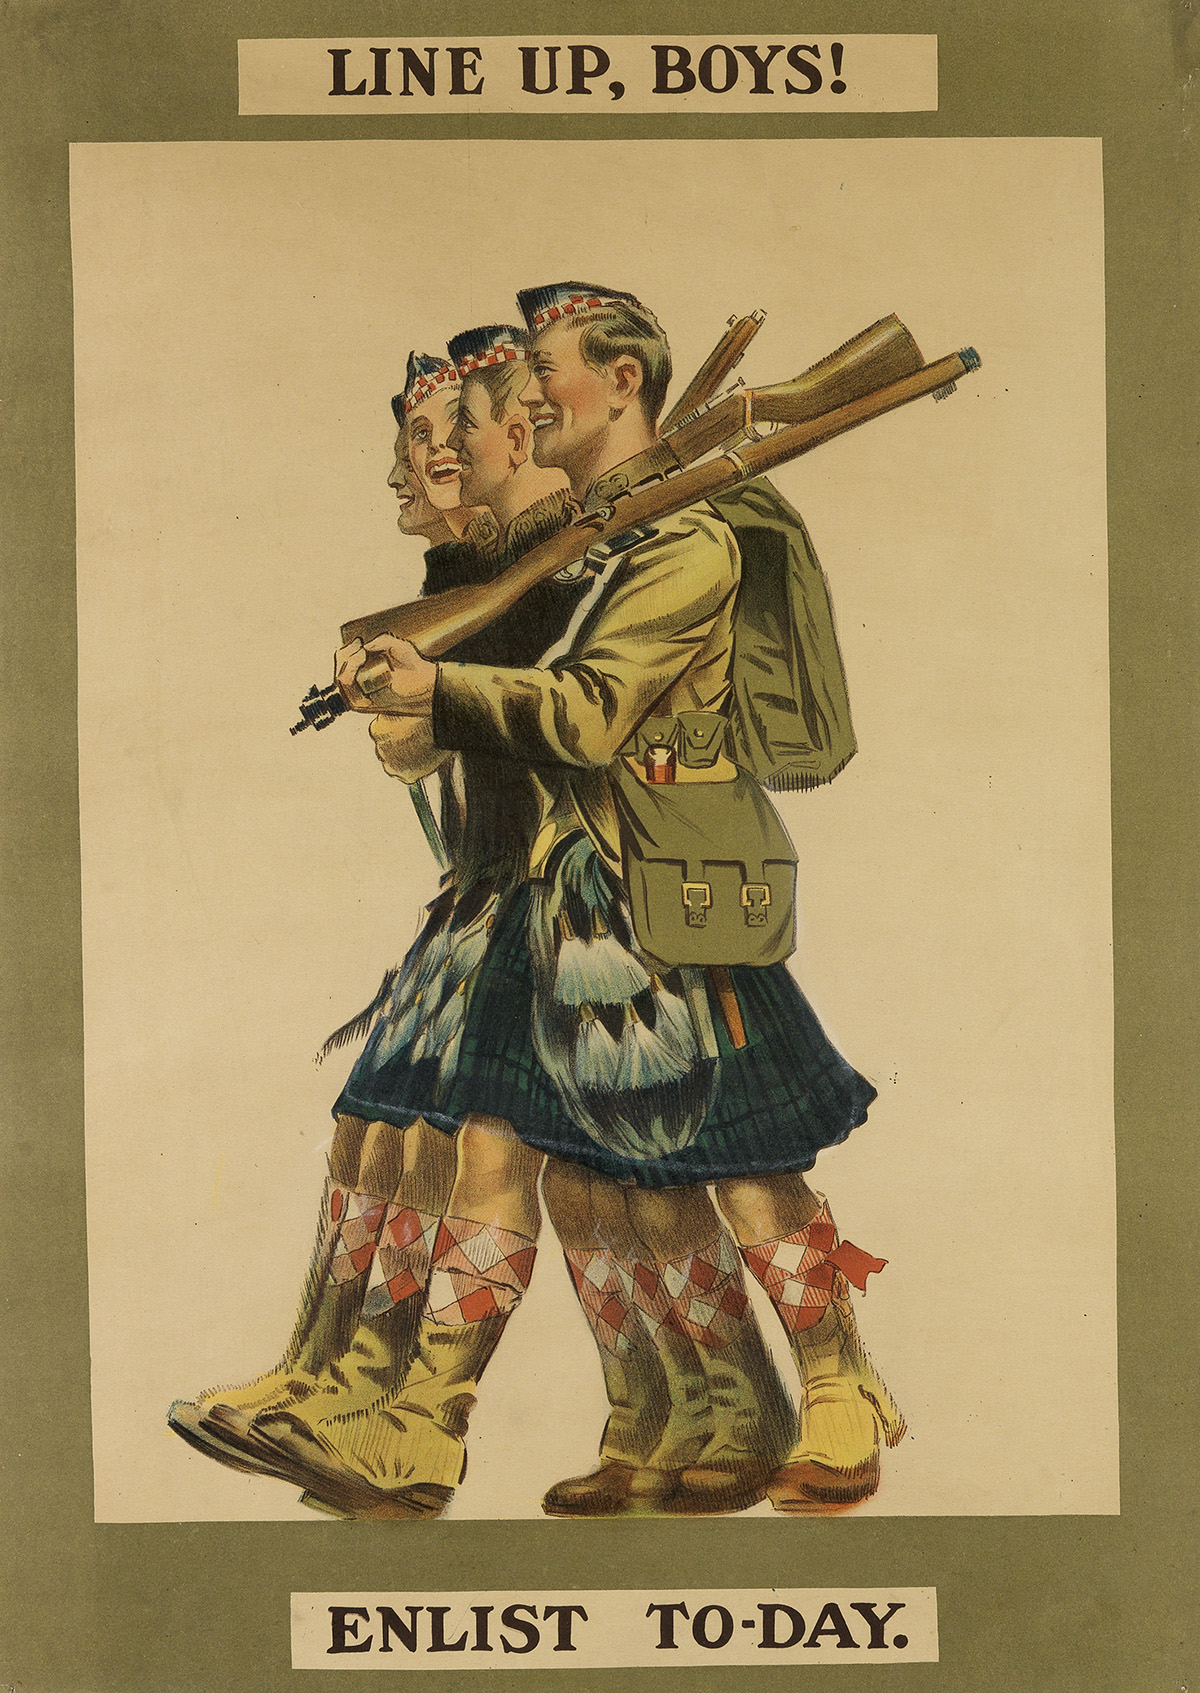 DESIGNER-UNKNOWN-LINE-UP-BOYS-ENLIST-TO---DAY-1915-27x18-inc